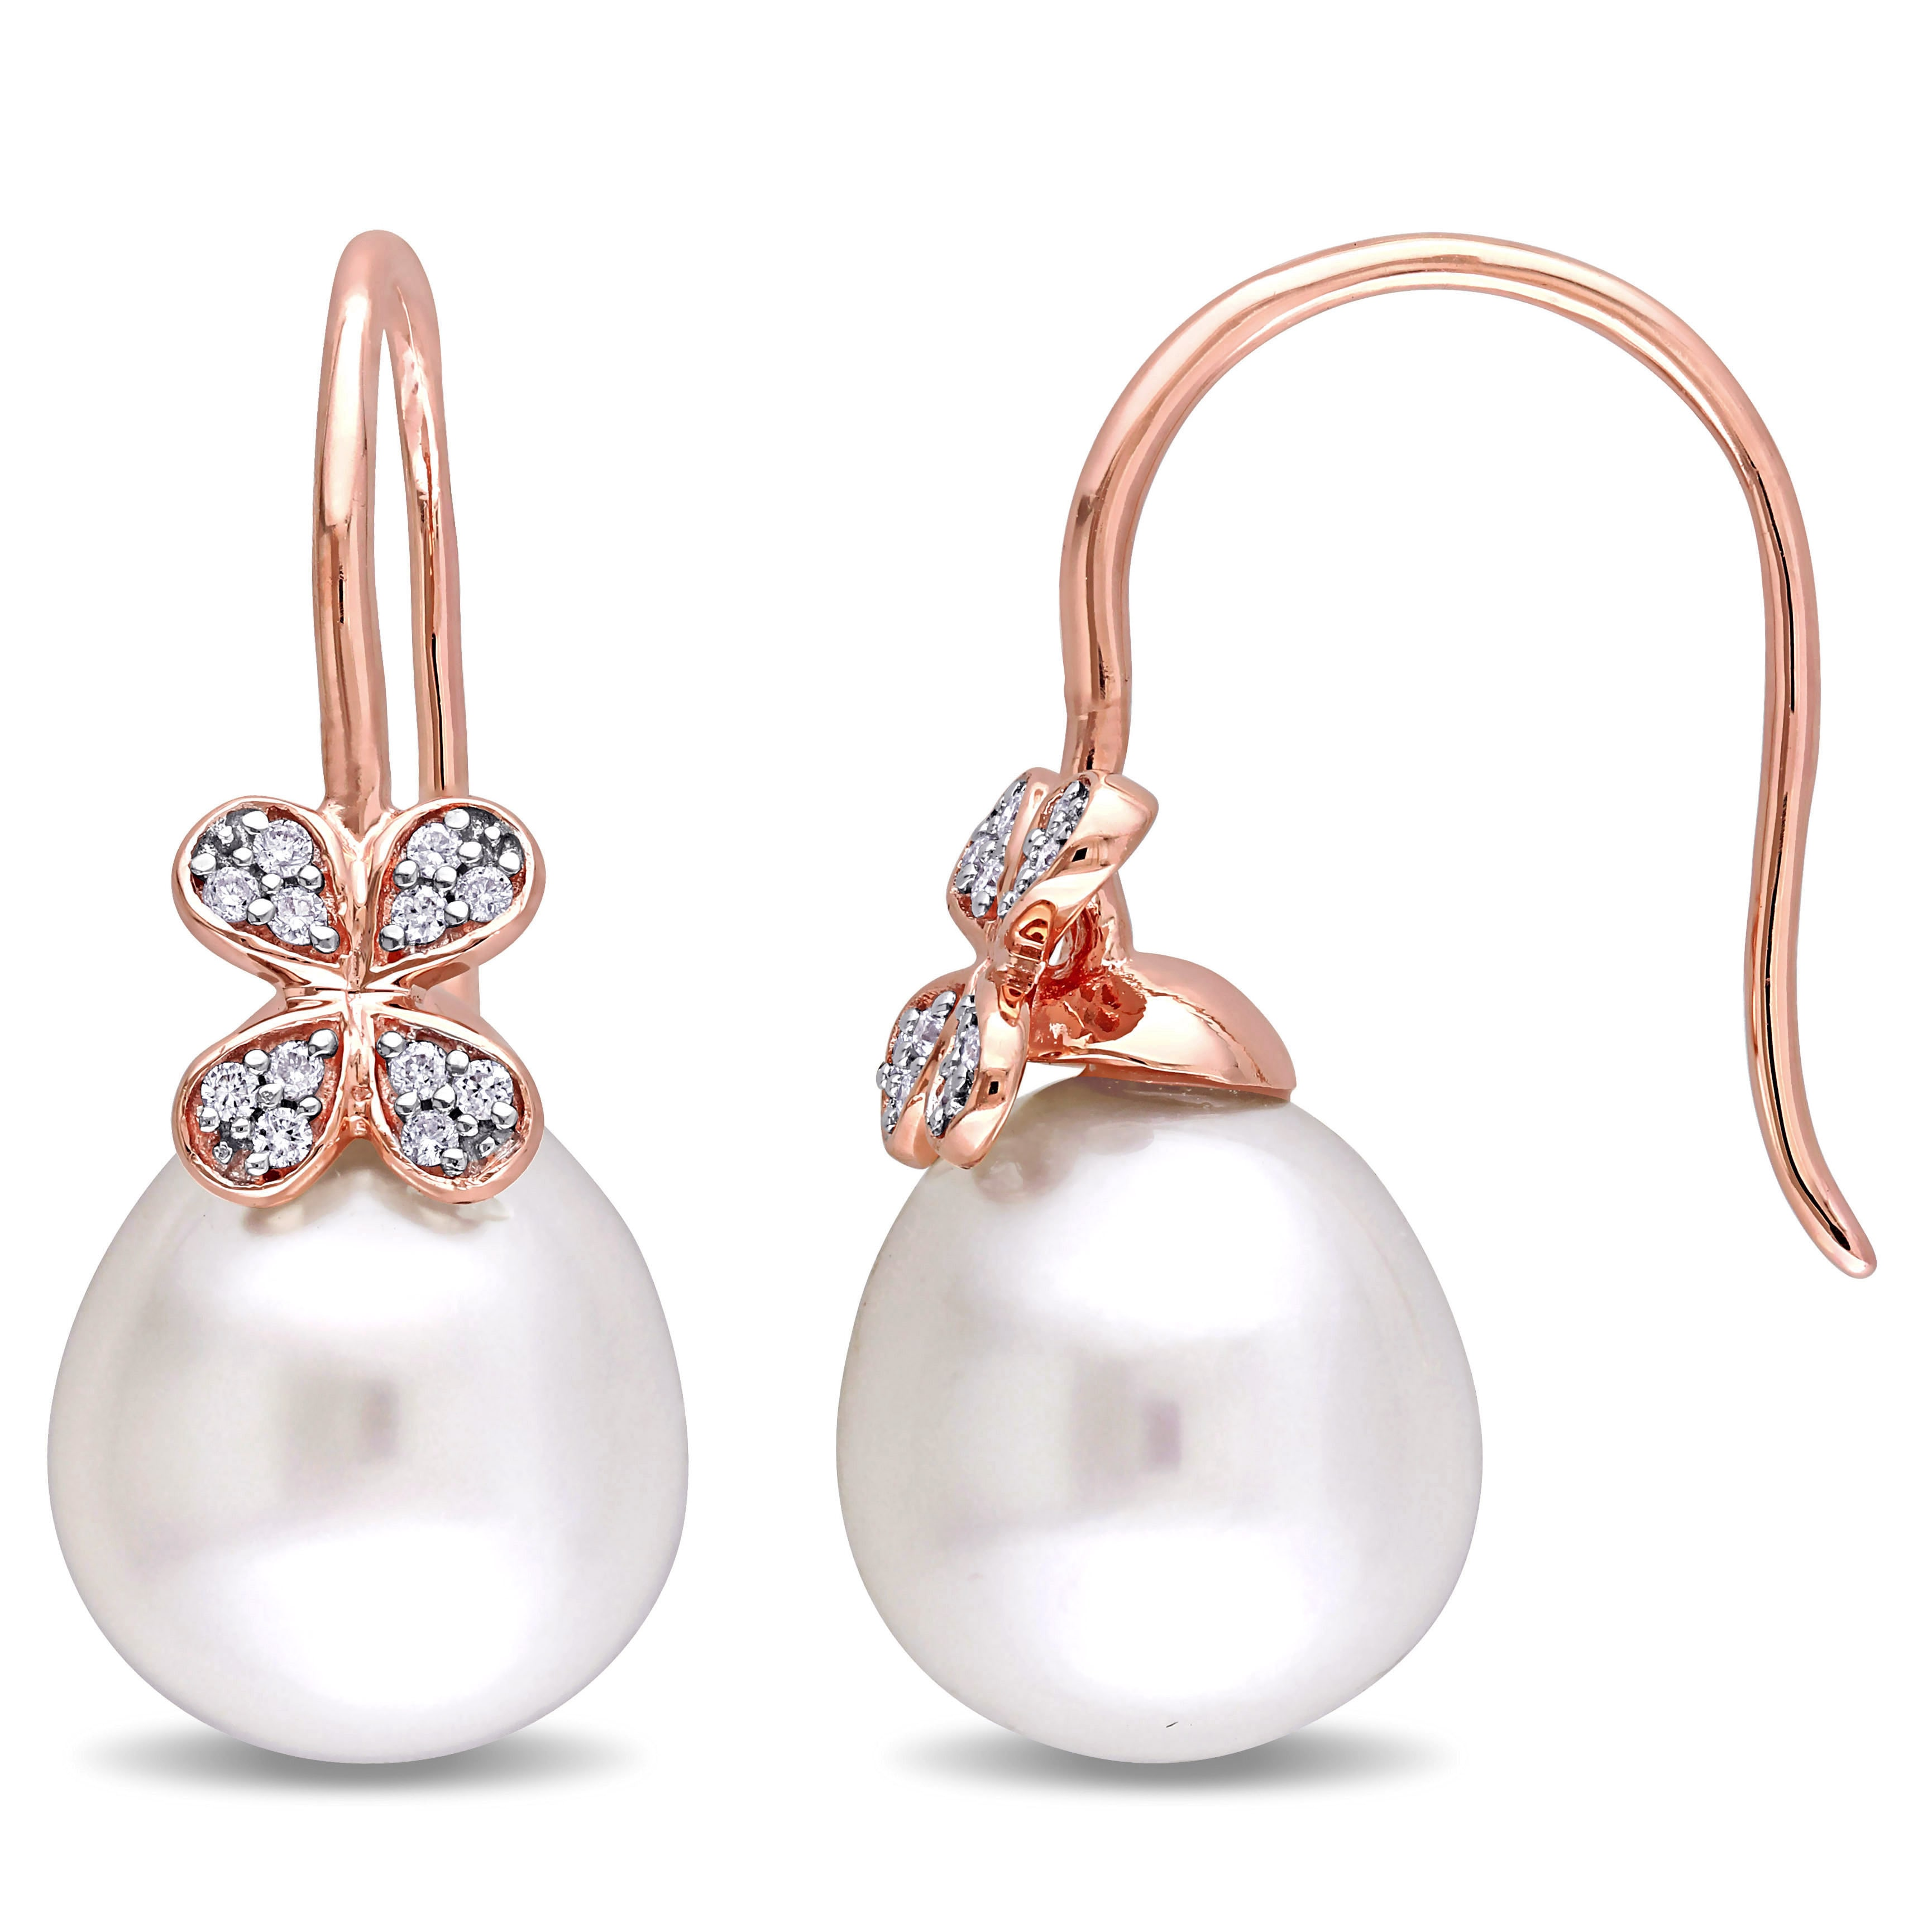 Miadora  Signature Collection 14k Rose Gold Diamond South Sea Pearl and 1/8ct TDW Clover Earrings (G-H, SI1-SI2) (11.5-12mm)